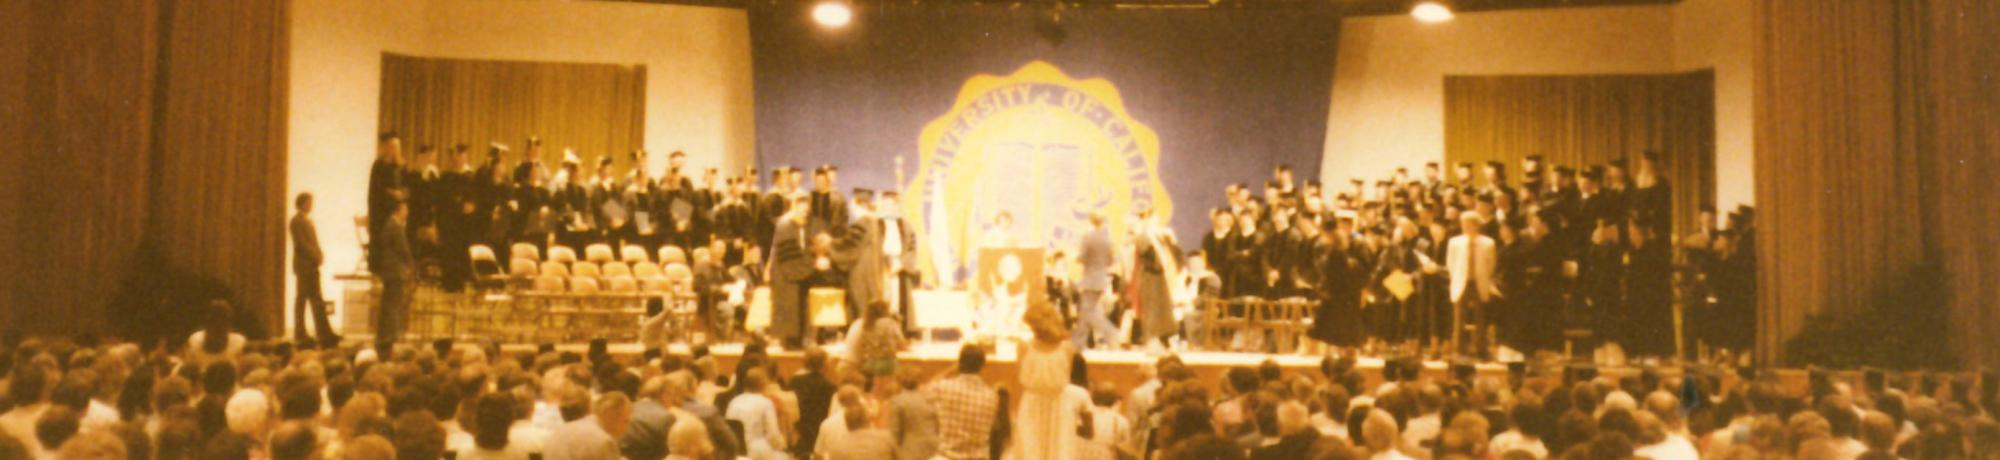 1979 graduation at Freeborn Hall